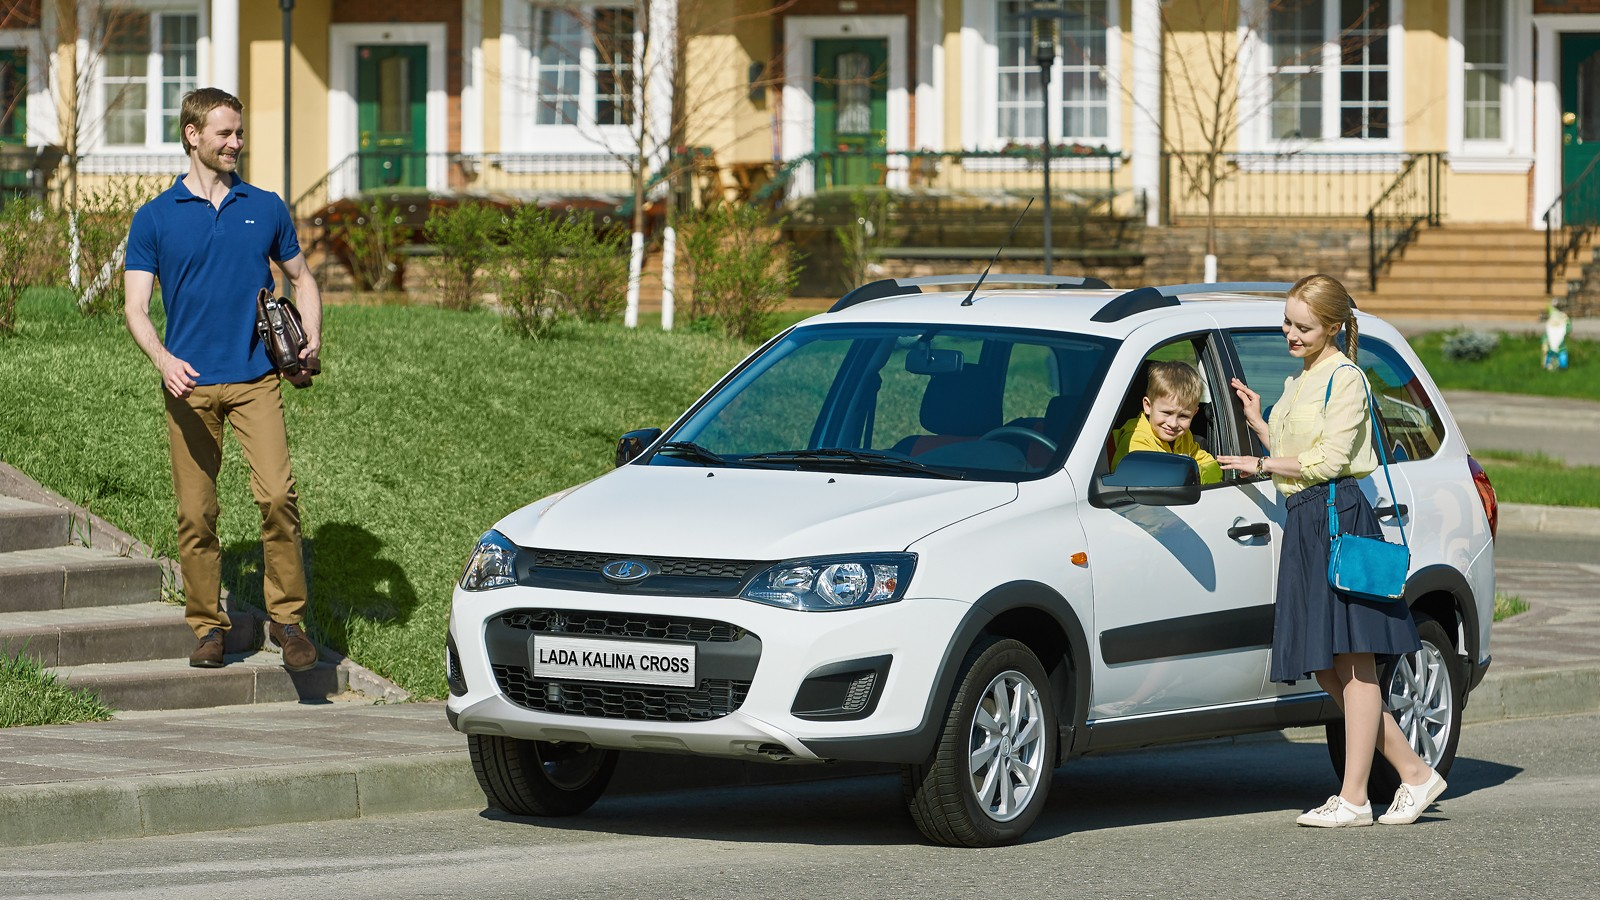 family_lada_kalina_cross_07